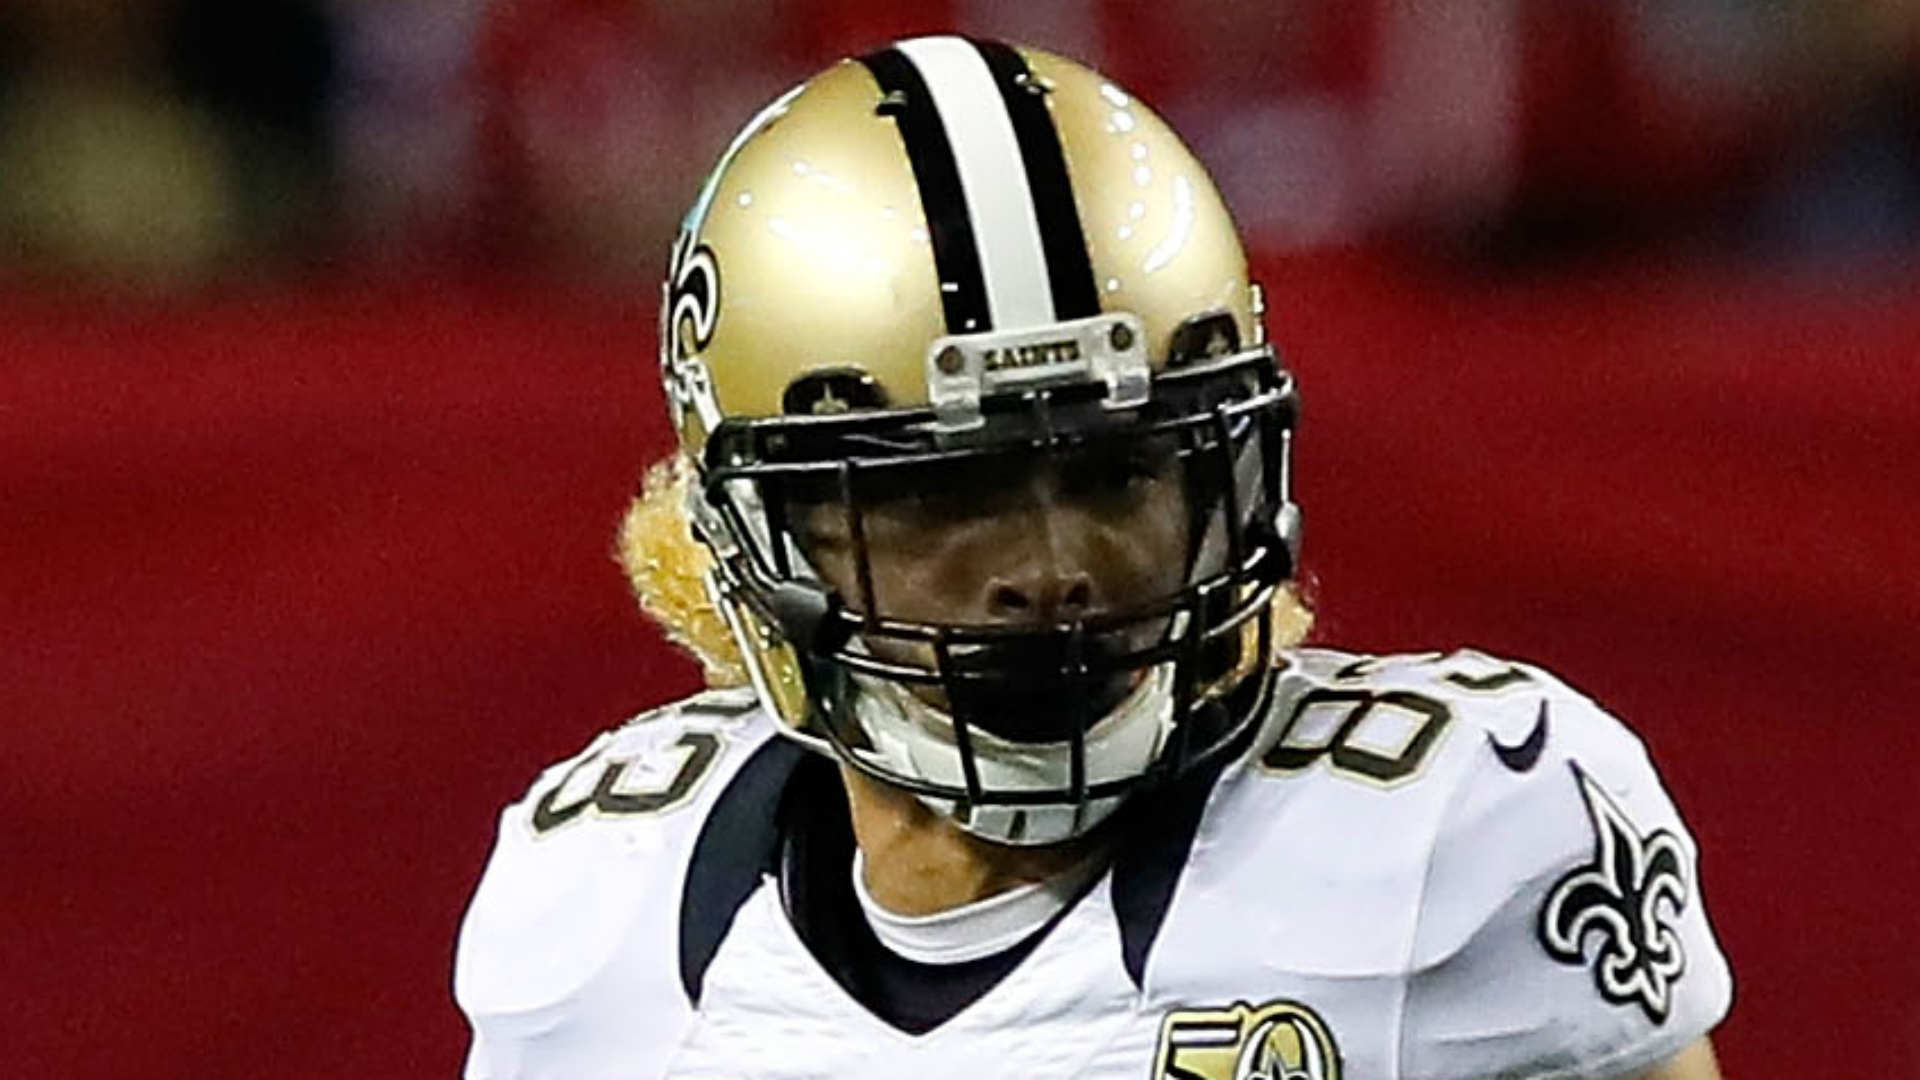 Saints receiver Willie Snead suspended for three games by NFL